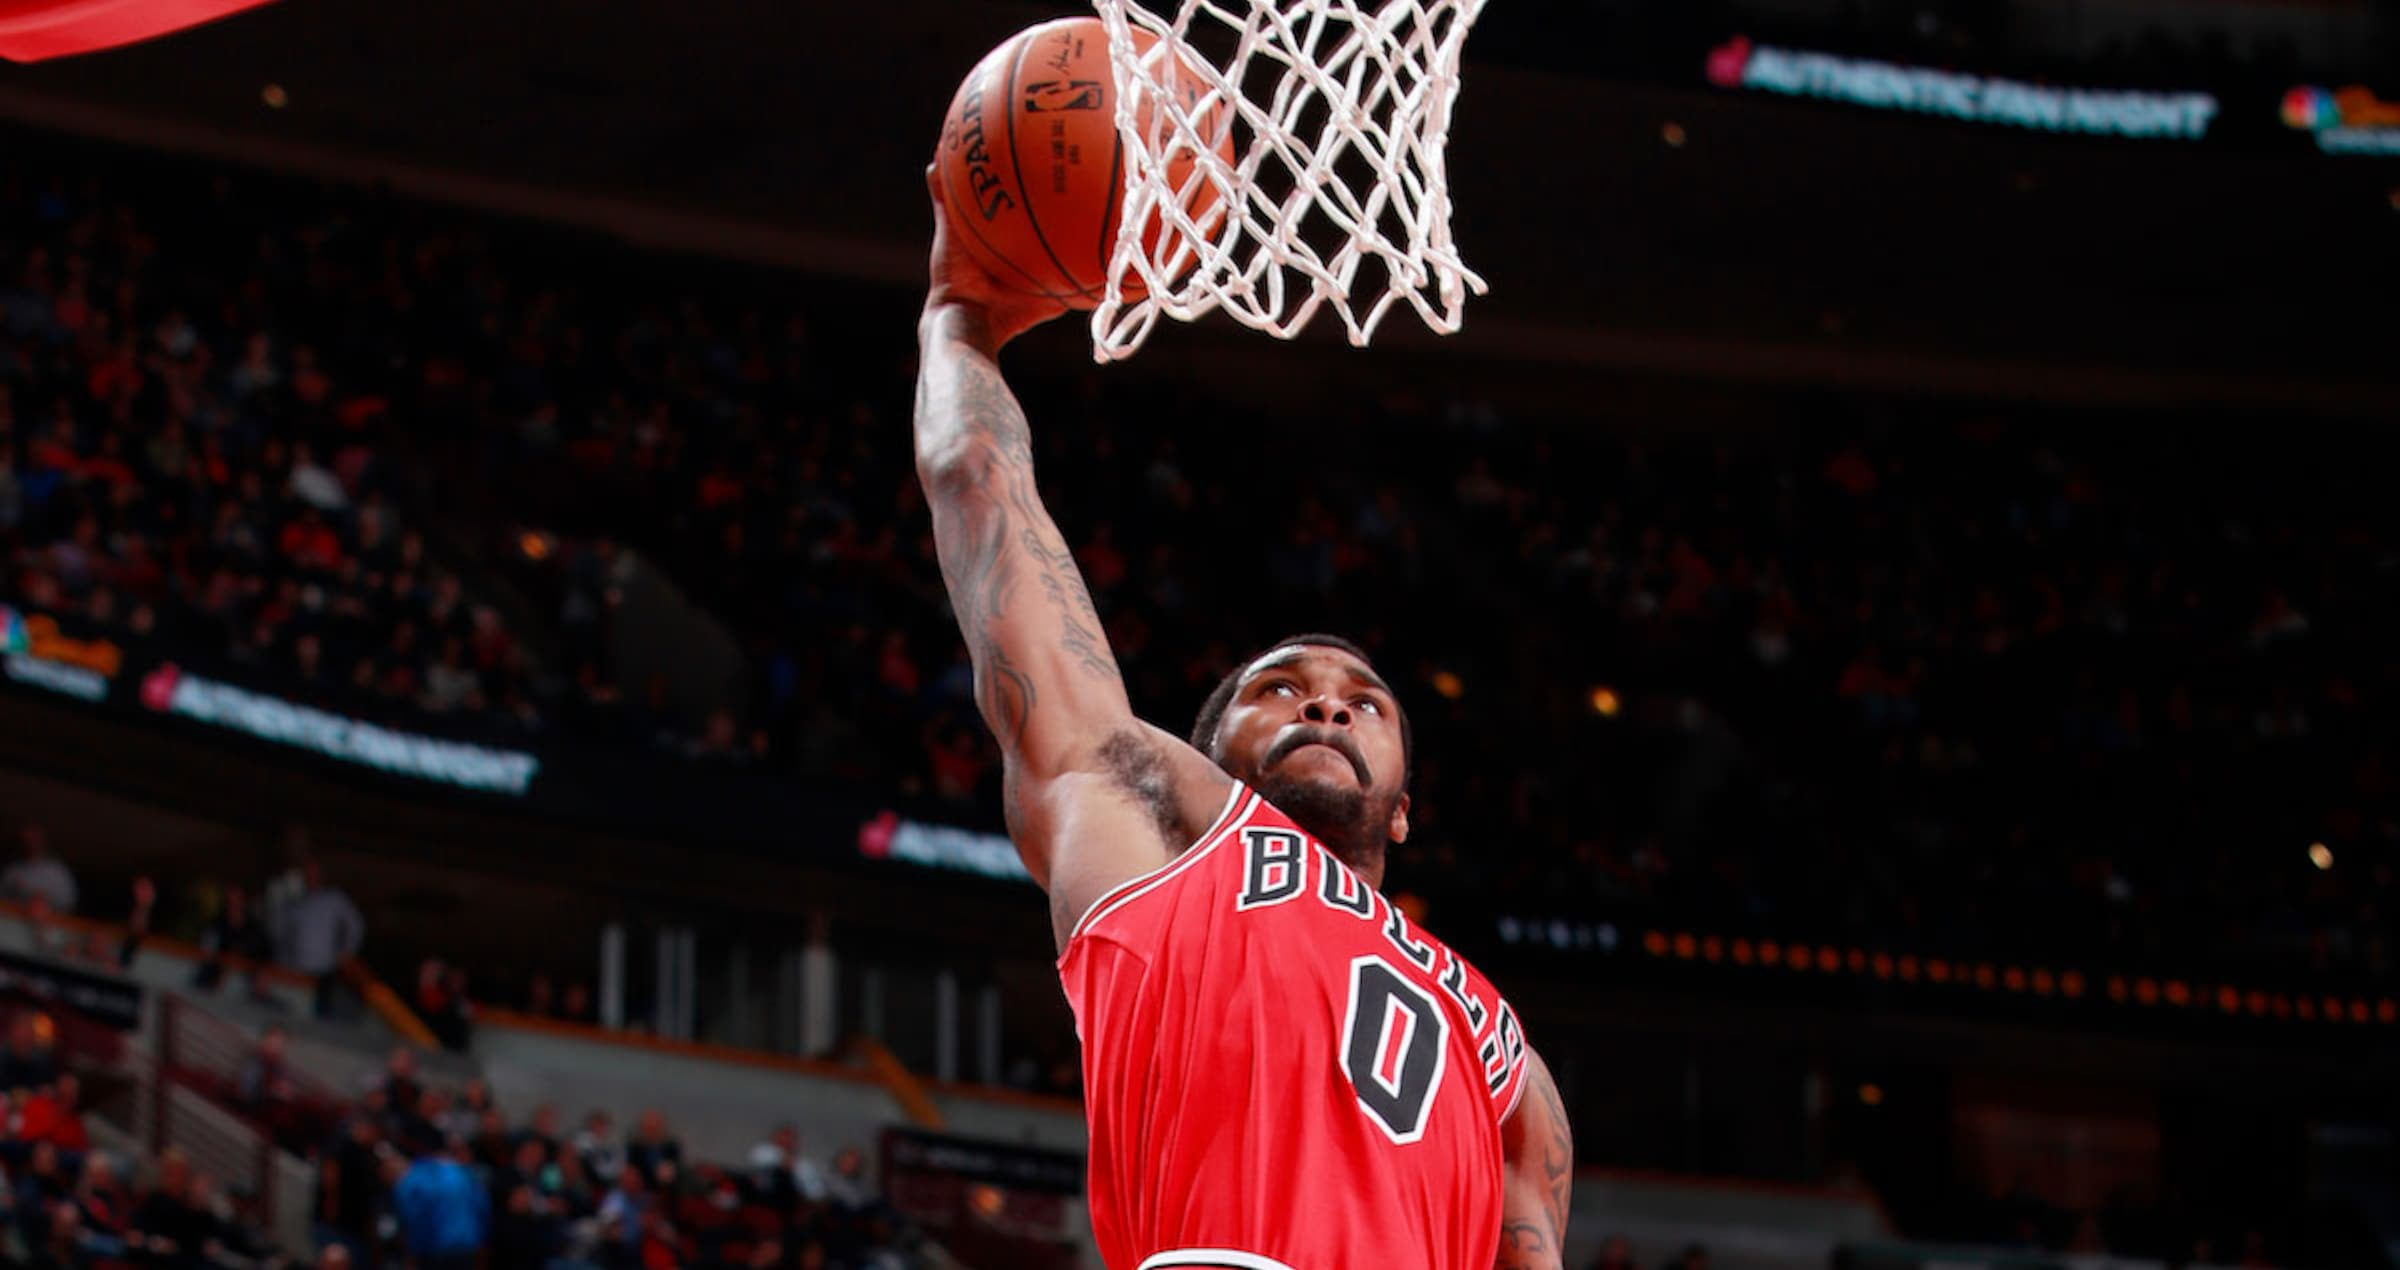 Sean Kilpatrick #0 of the Chicago Bulls goes up for a dunk against the Charlotte Hornets on April 3, 2018